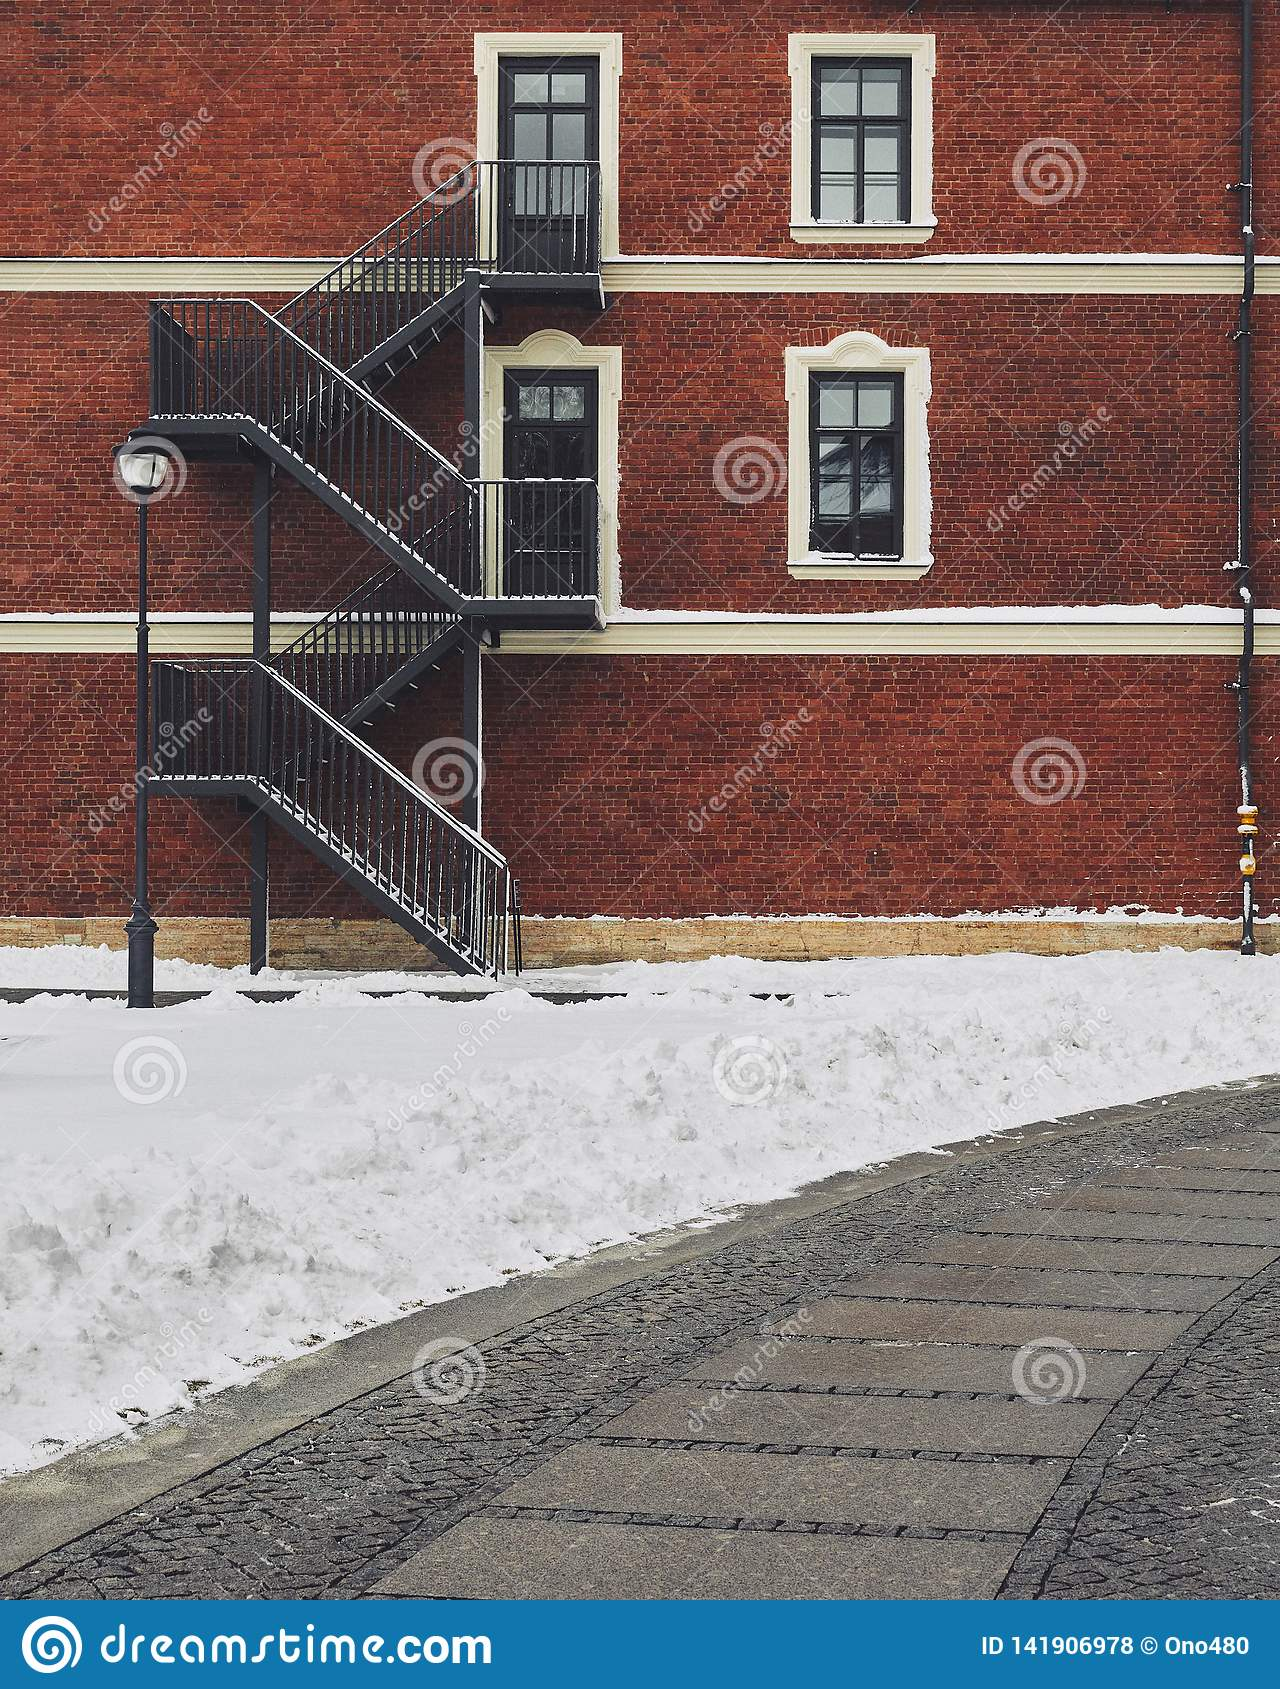 Red brick building. Staircase, the facade of the building. fire exit